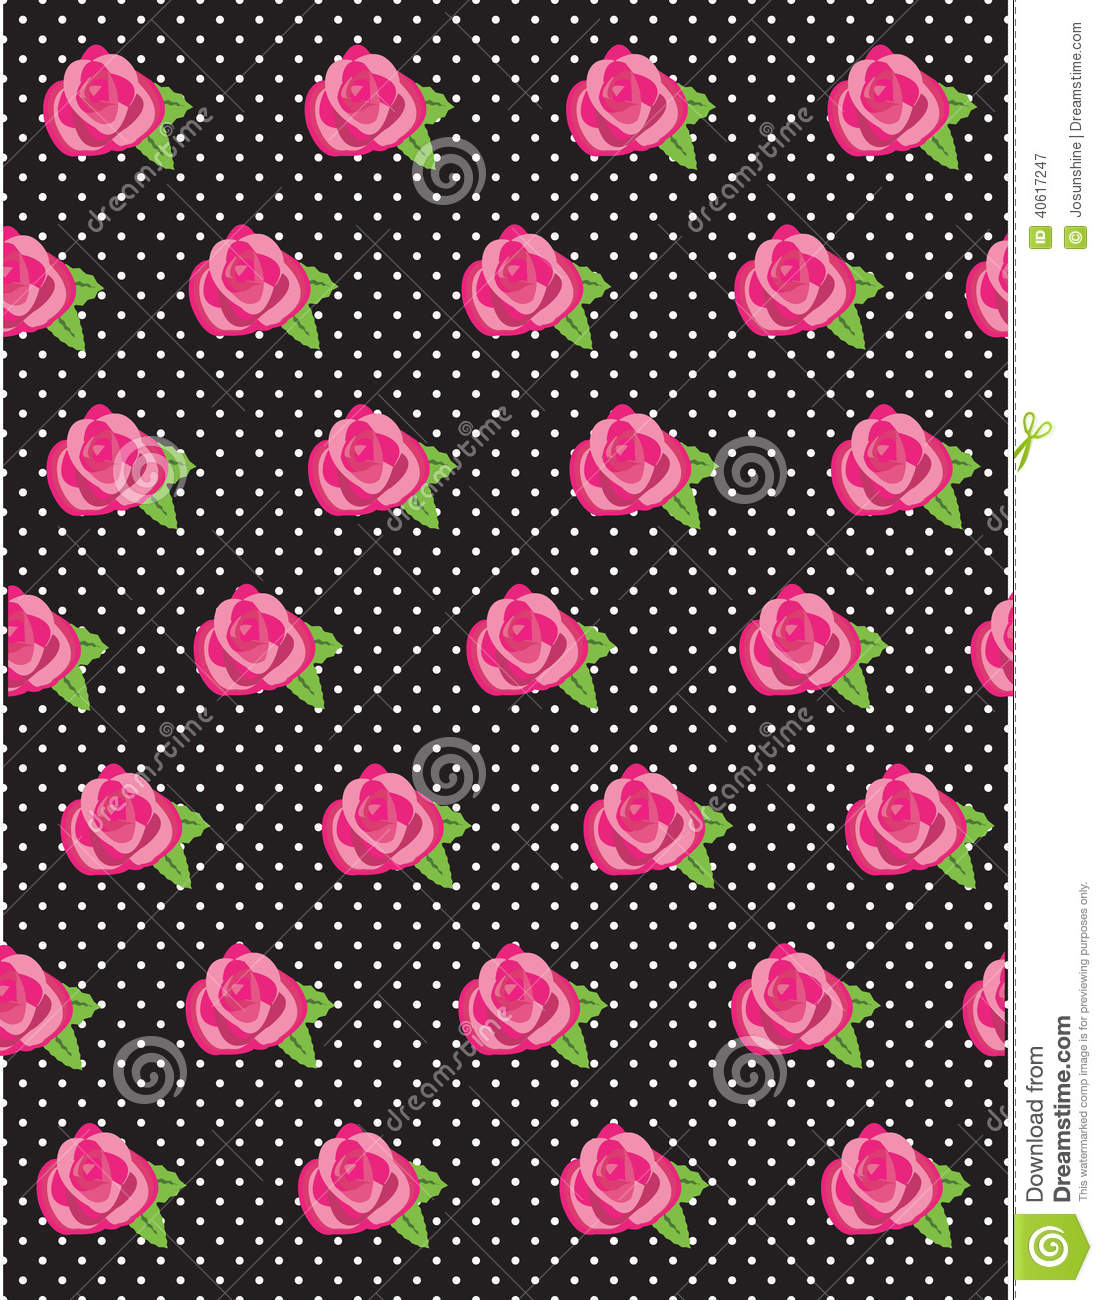 Pink Polka Dot Wallpaper: Rose Flower Polka Dot Pattern Stock Vector